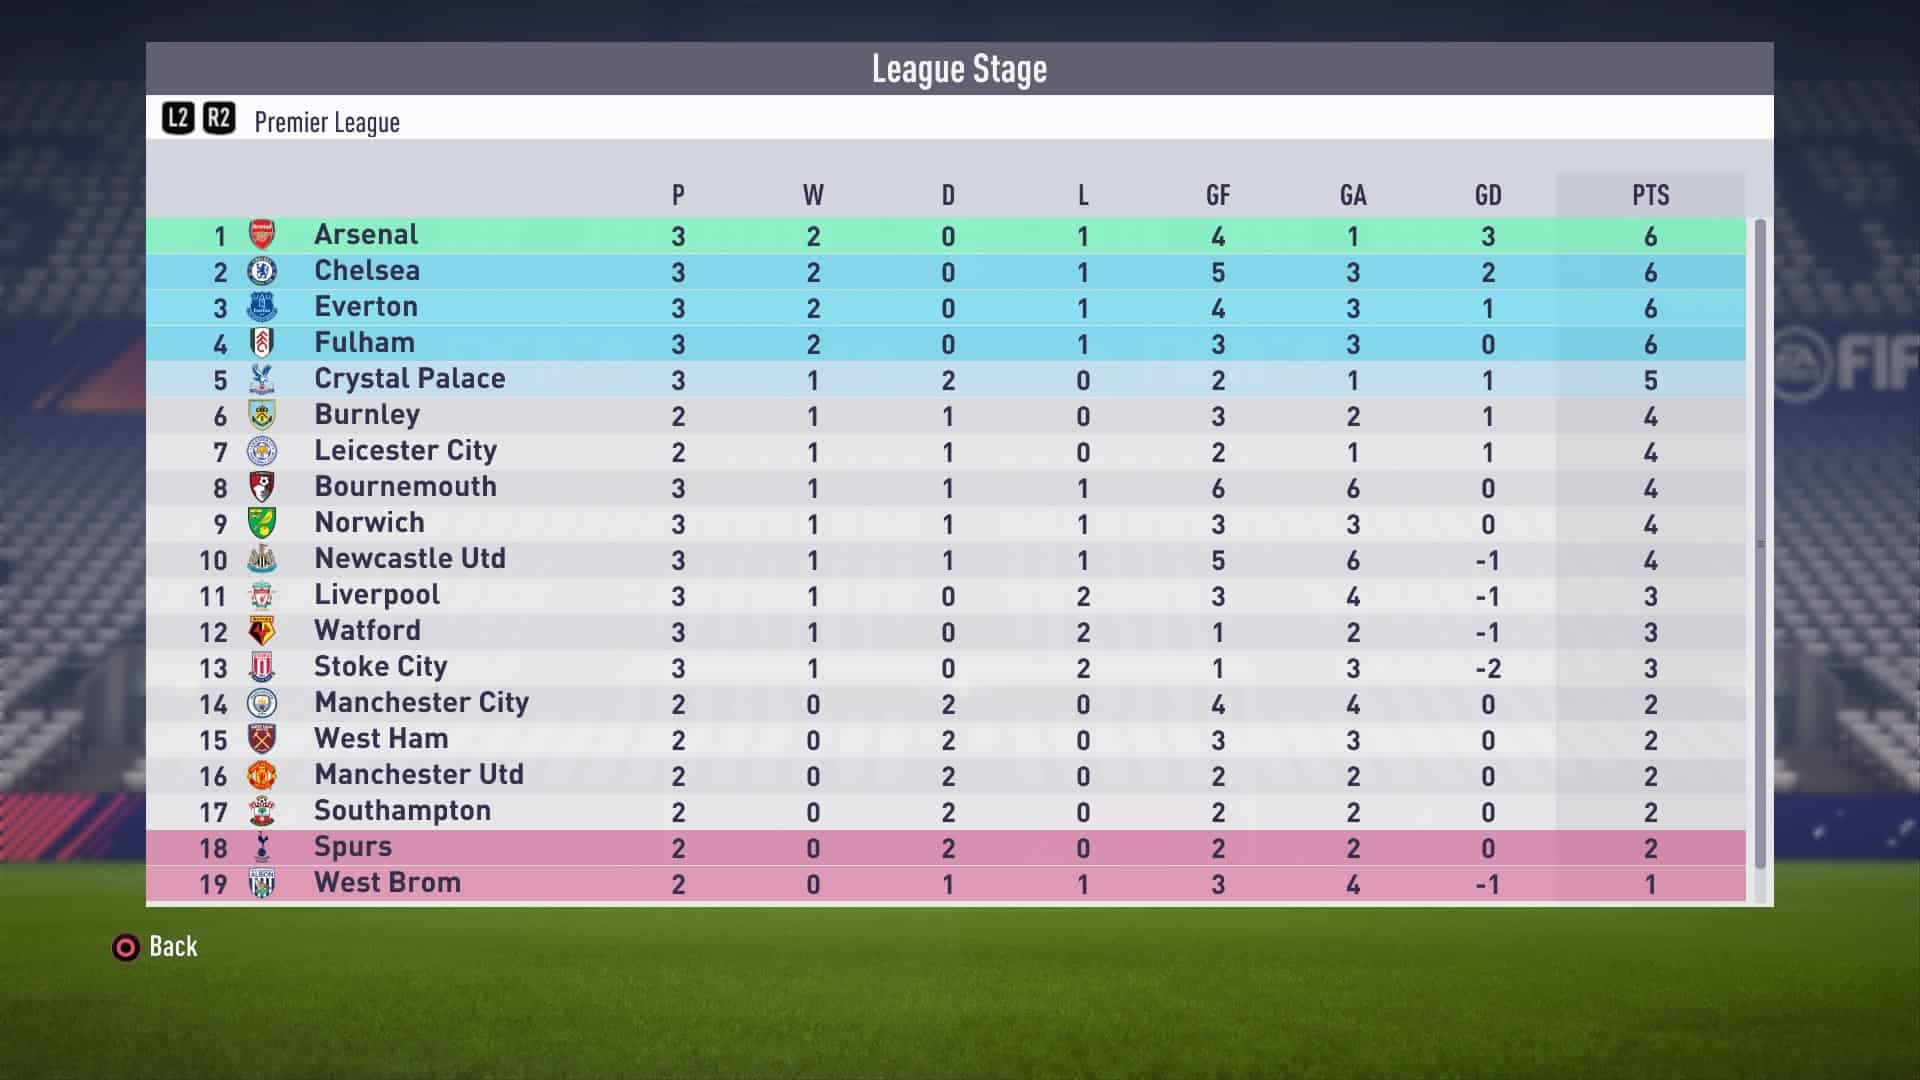 Chelsea in League Two: What Happens? - FIFA Career Mode Tips